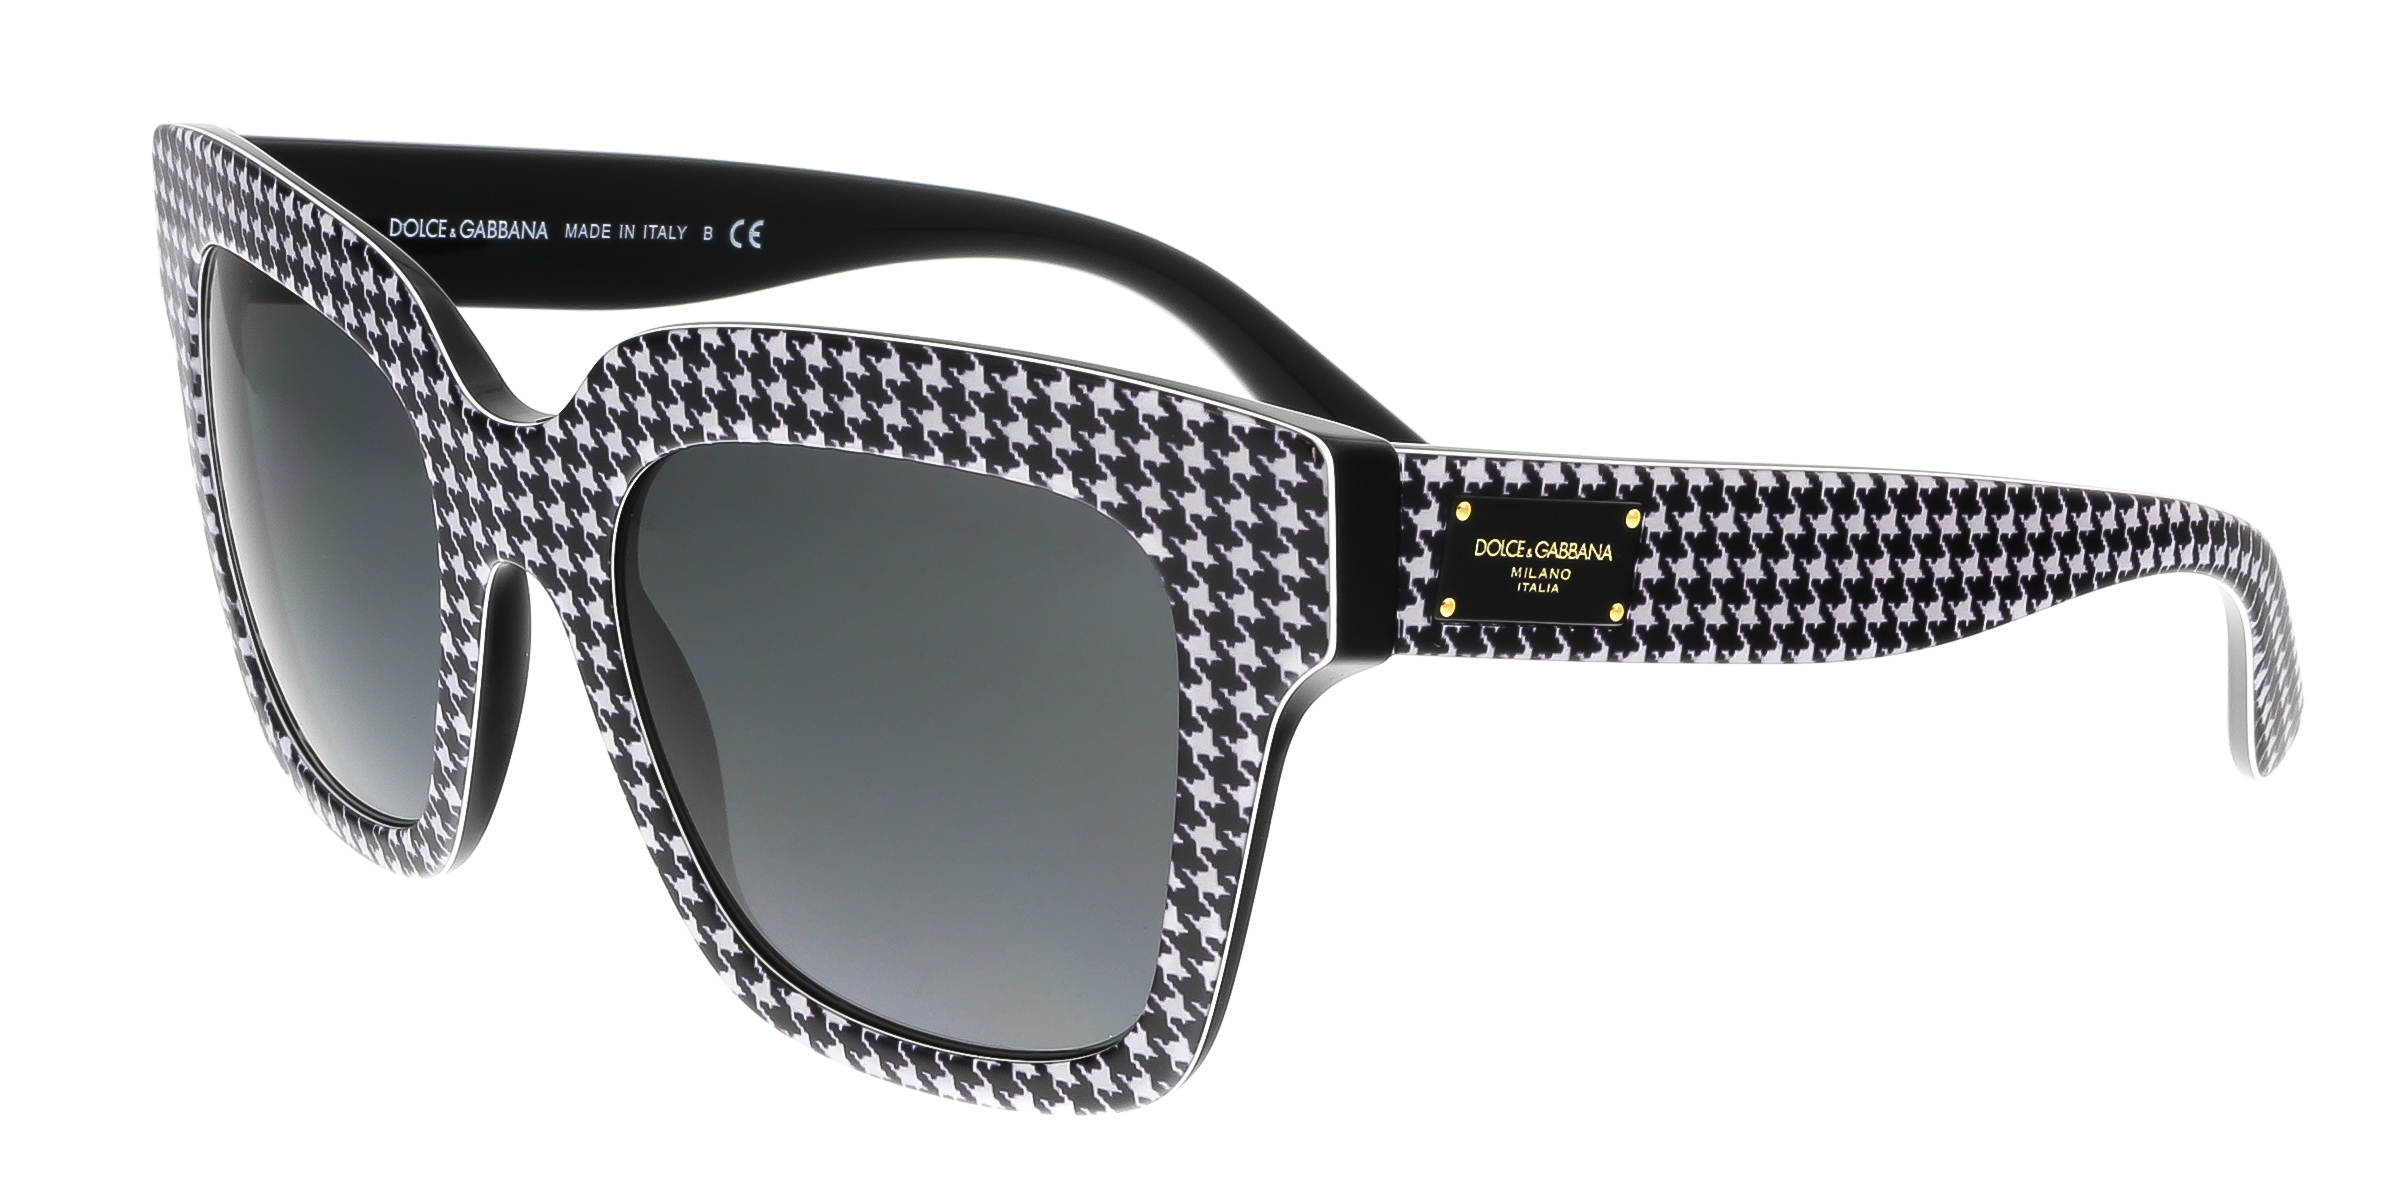 Dolce & Gabbana DG4286 307987 Black/White Square Houndstooth Sunglasses